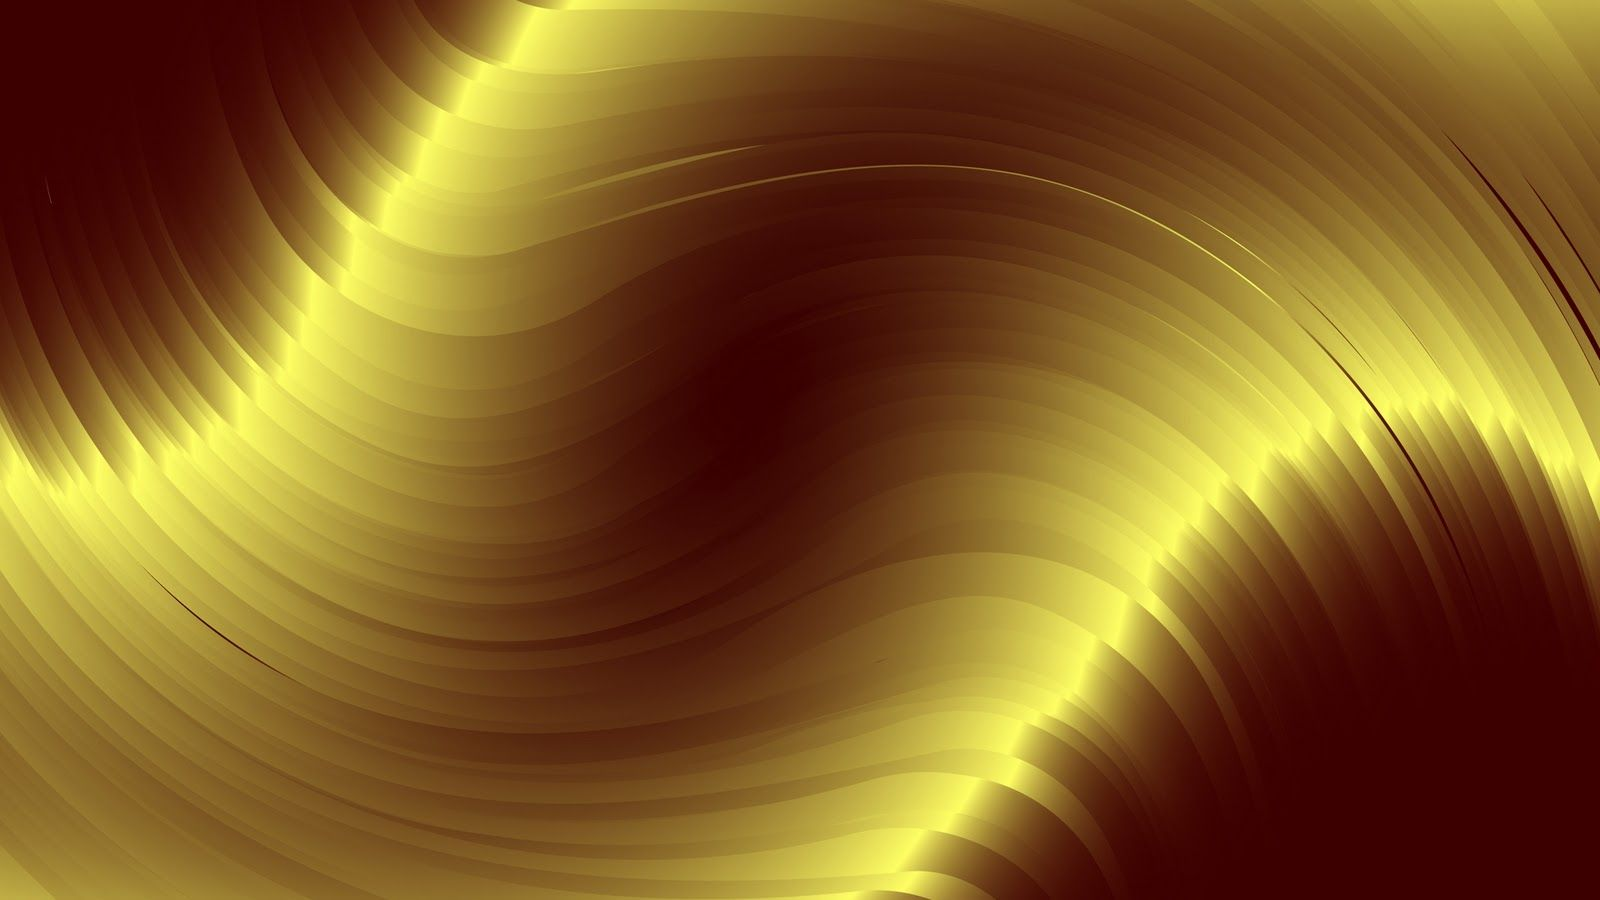 Design pattern best vector wallpapers abstract gold for Gold 3d wallpaper